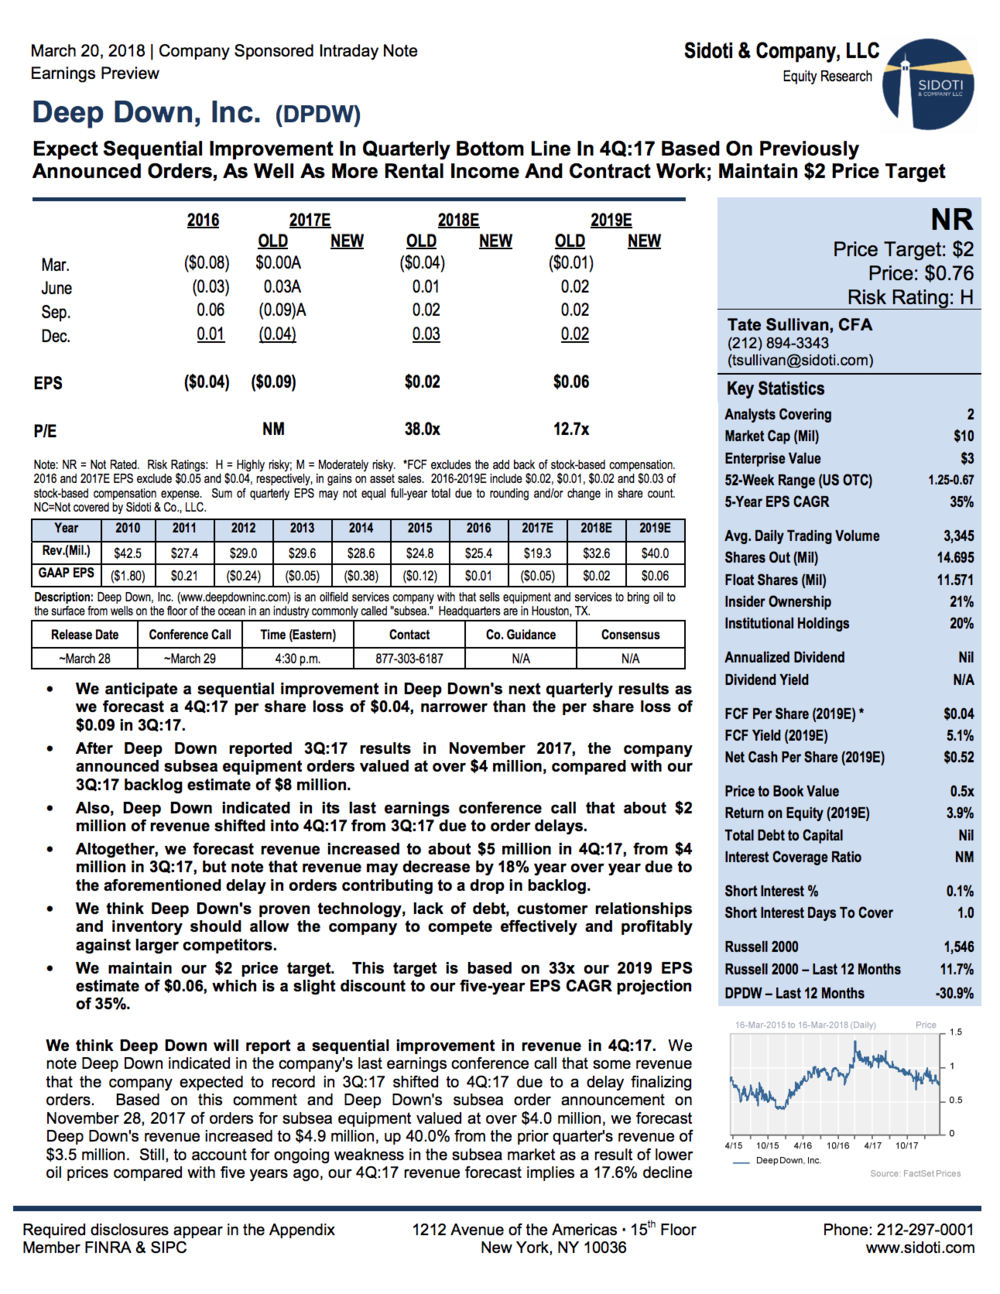 Earnings Preview: March 20, 2018